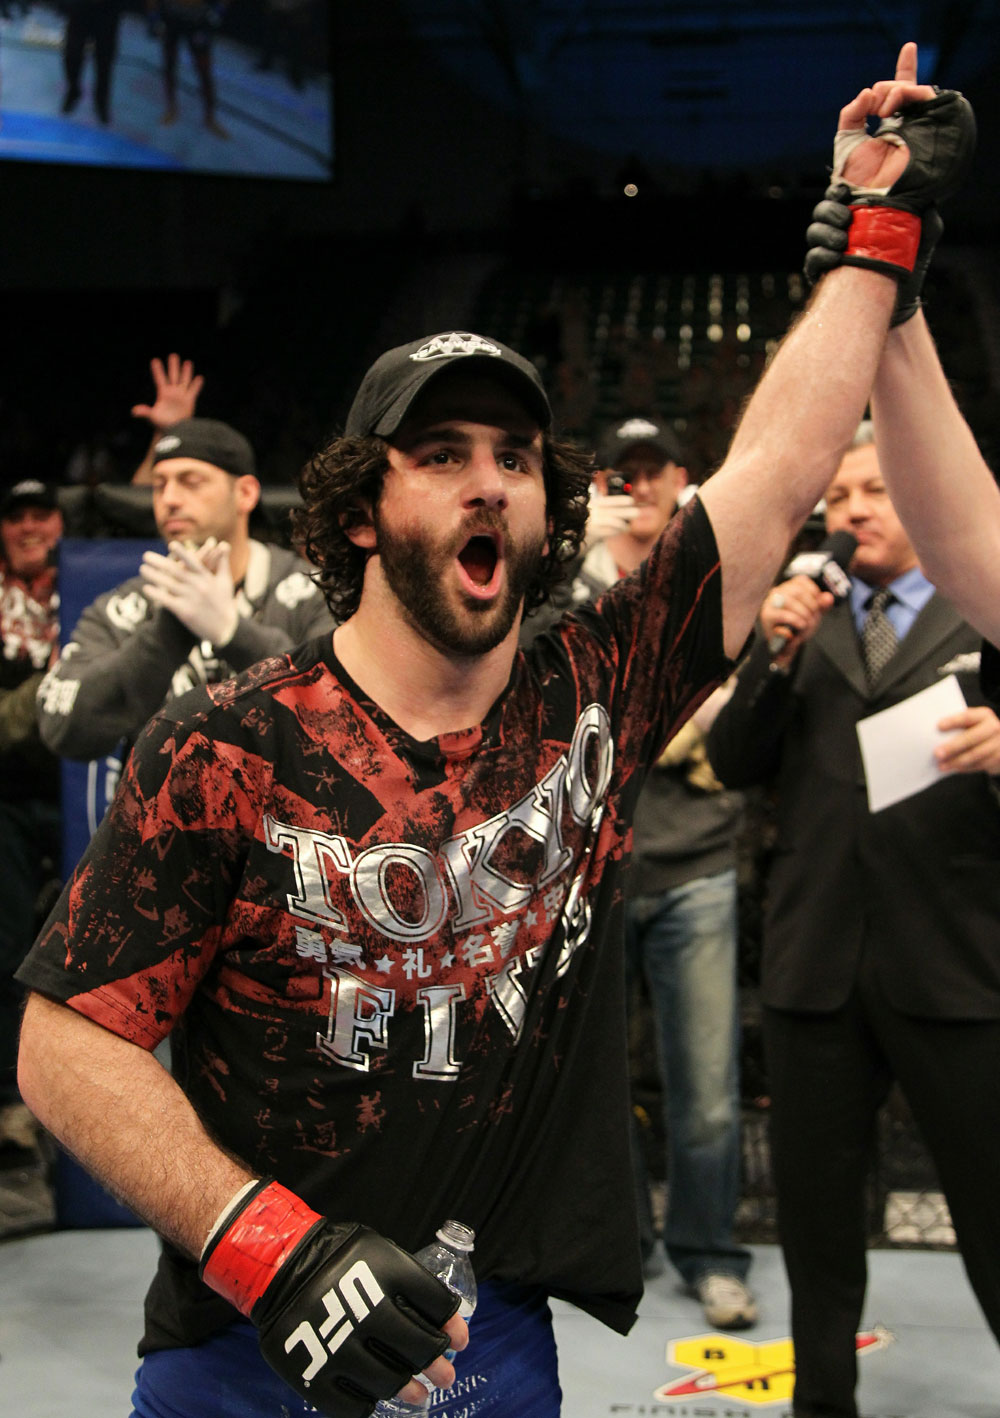 Charlie Brenneman celebrates his win over Alves.